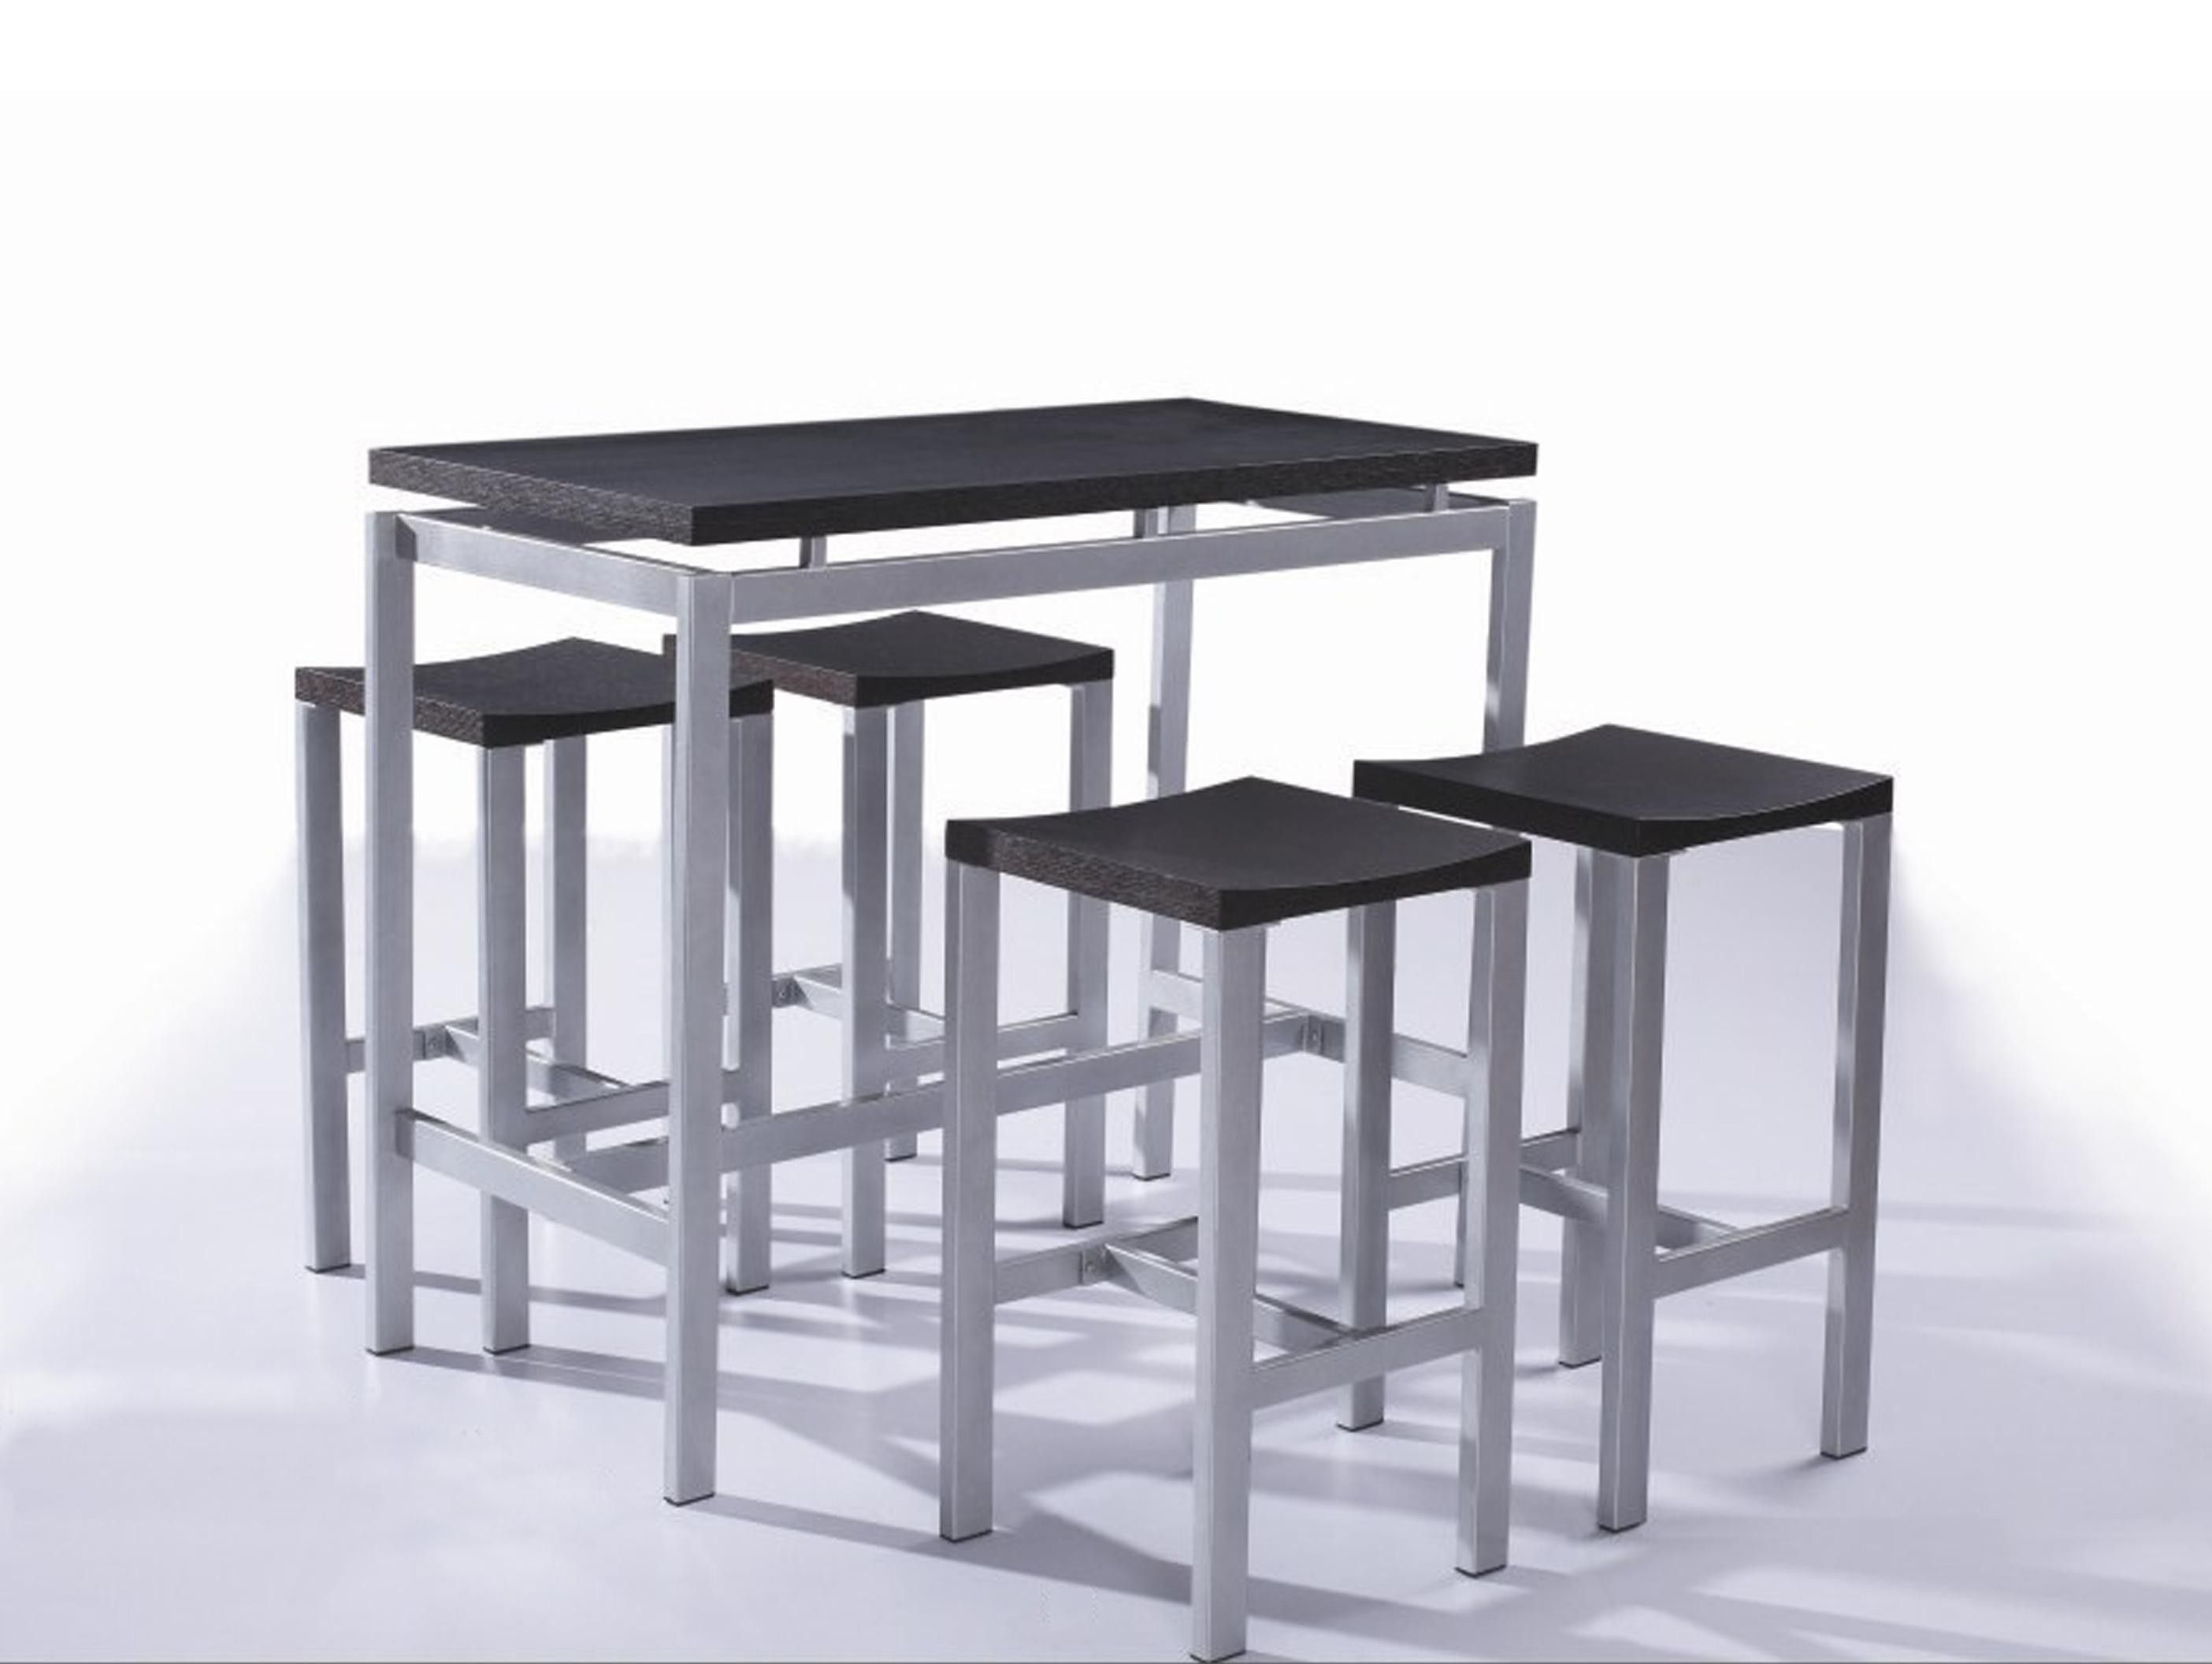 Table haute et 4 tabourets contemporain noir madrid table haute madrid et tabouret for Tabouret table haute